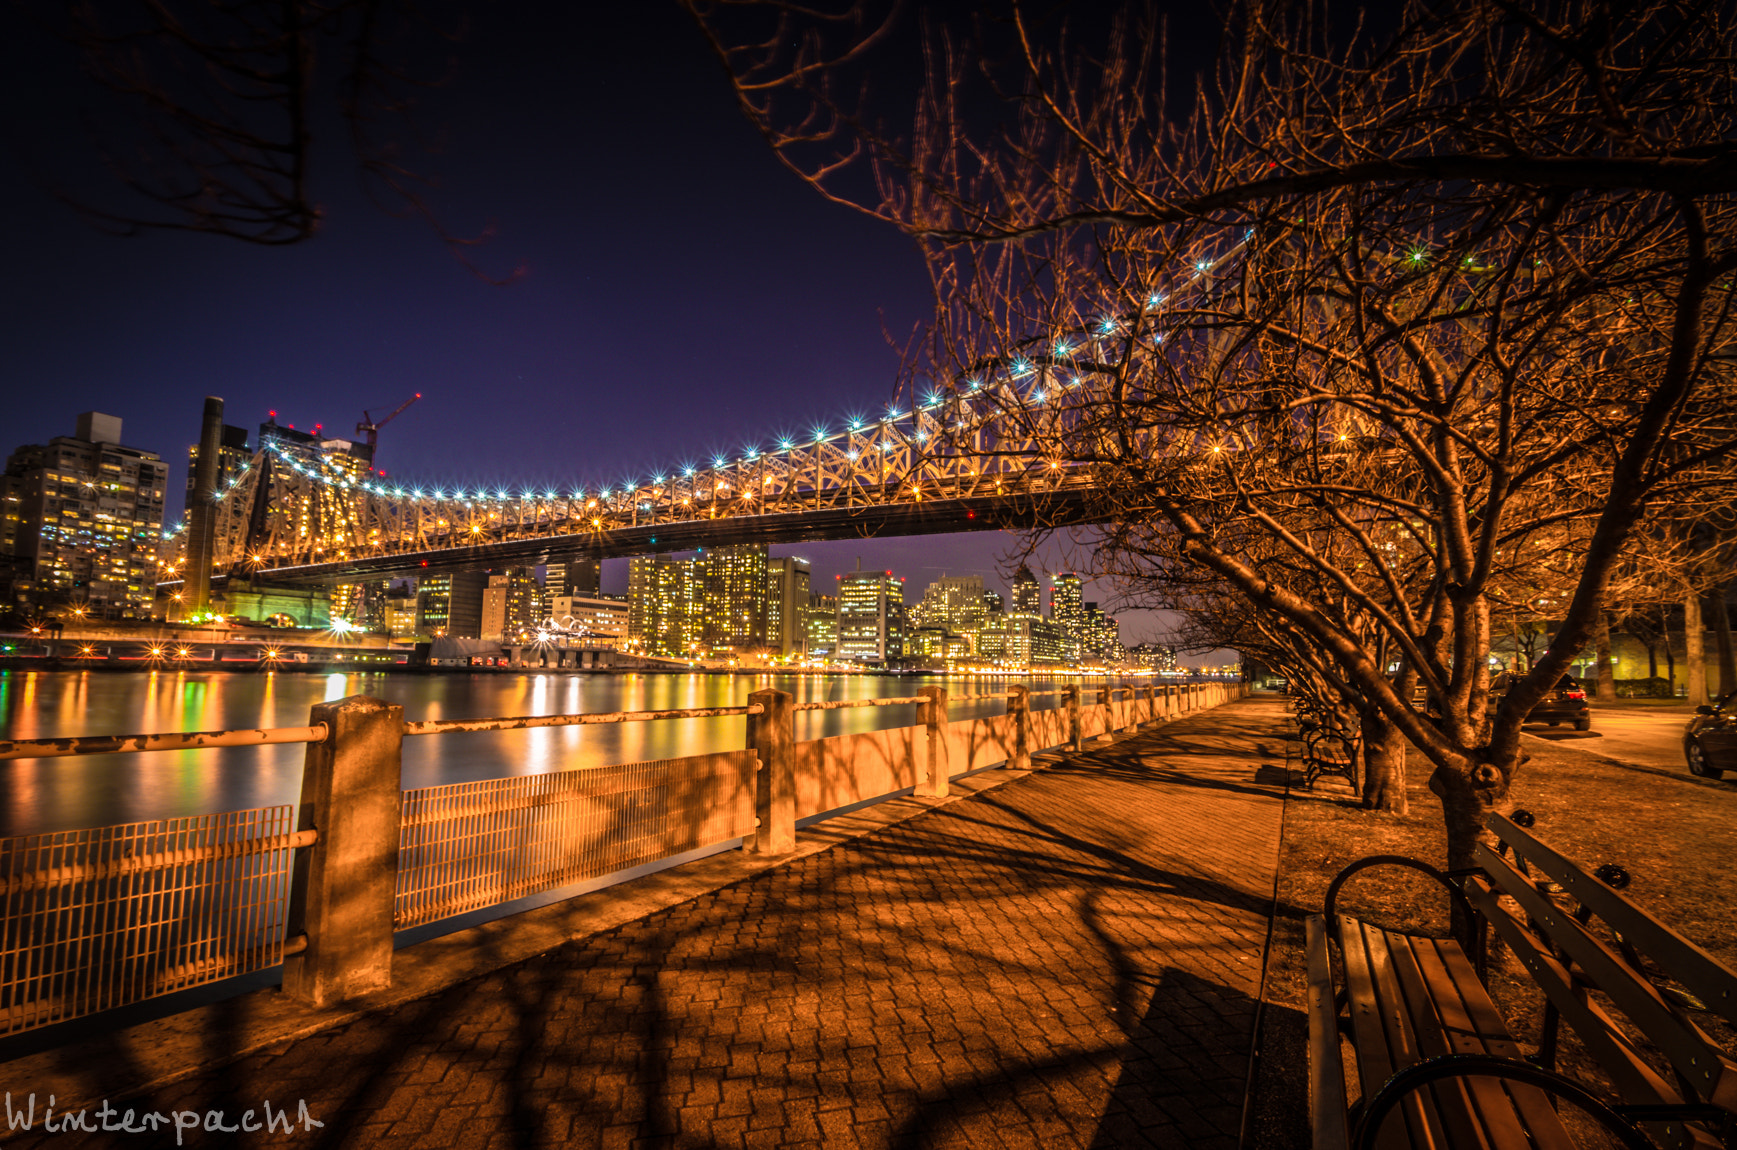 Photograph From Roosevelt Island by Raf Winterpacht on 500px